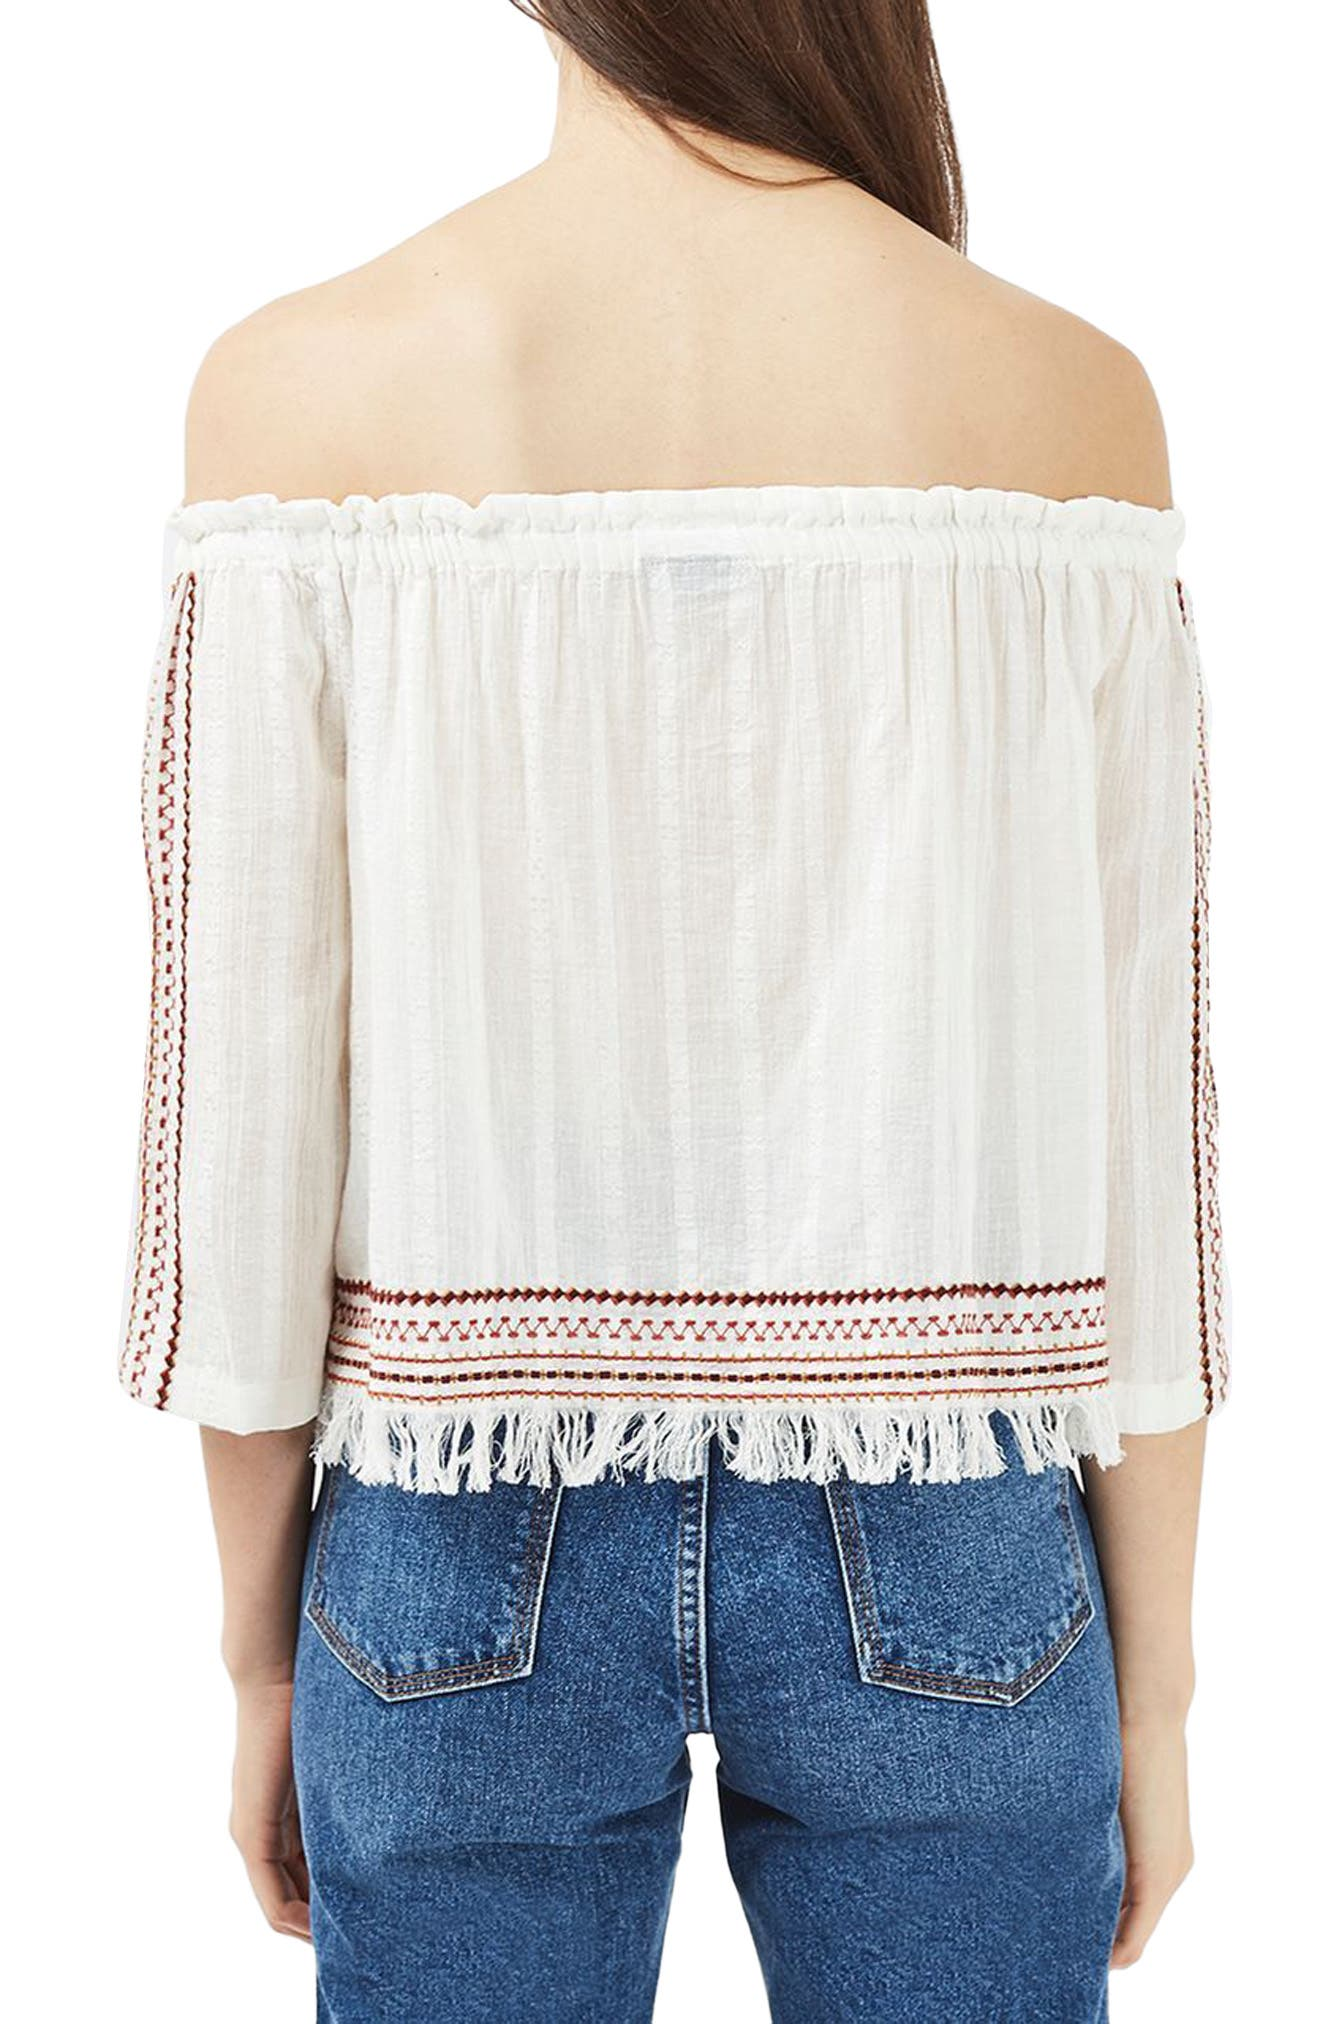 Bardot Embroidered Top,                             Alternate thumbnail 2, color,                             900